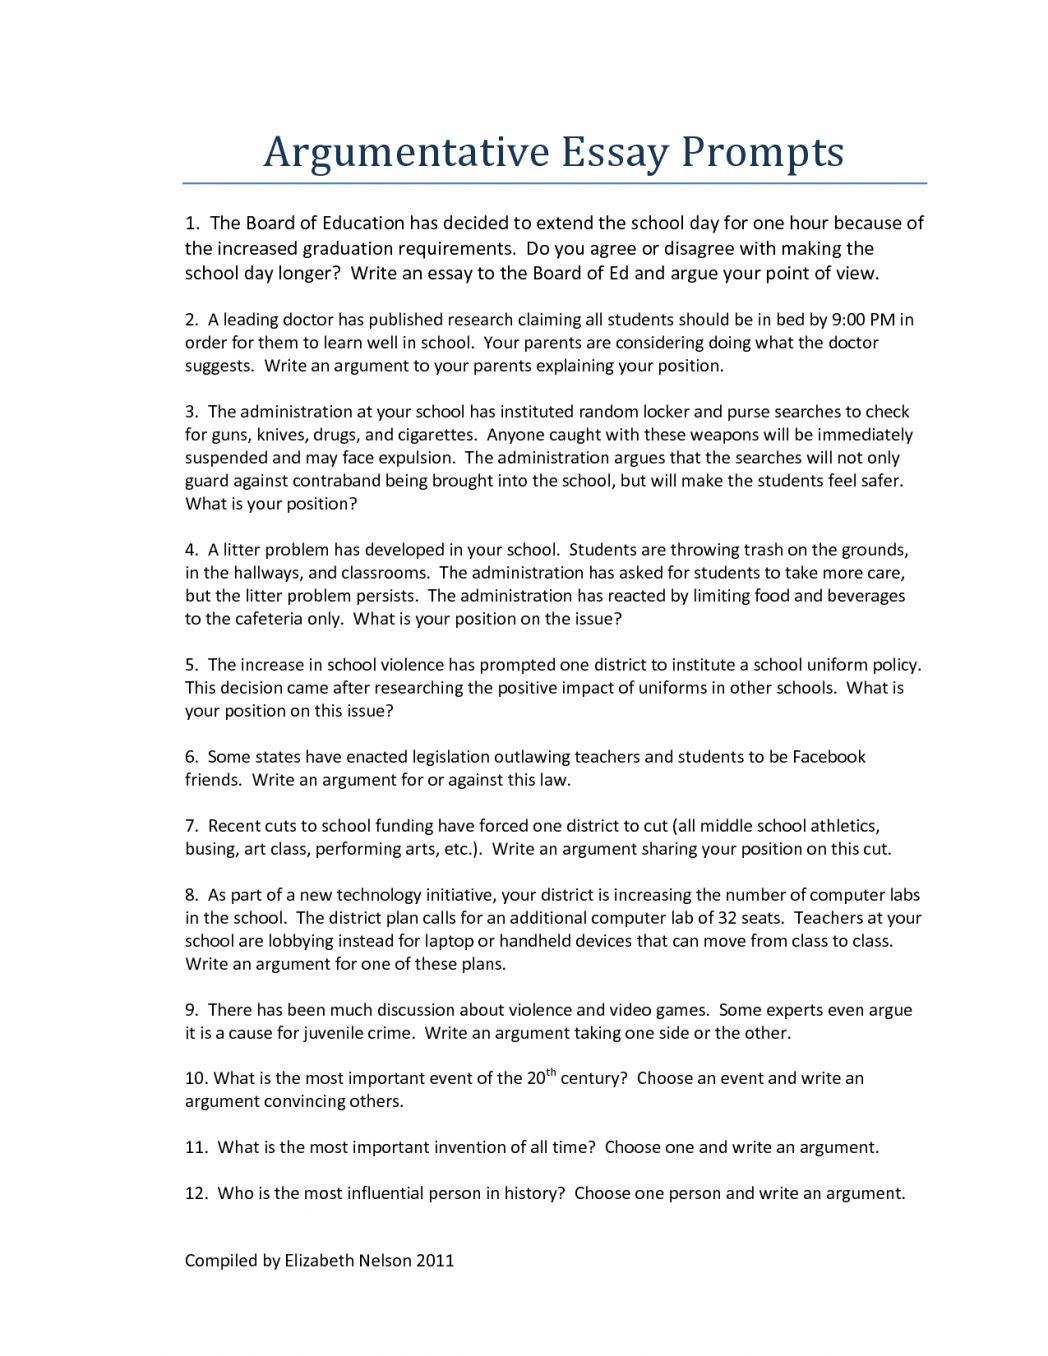 007 Essay Exampleumentative Topics For Middle School Writings And Essays Interesting To Write An On Good Persuasive Highume How Topic Sentence Easy Best Fun 1048x1356 Striking Argumentative What Is A Prompts Full